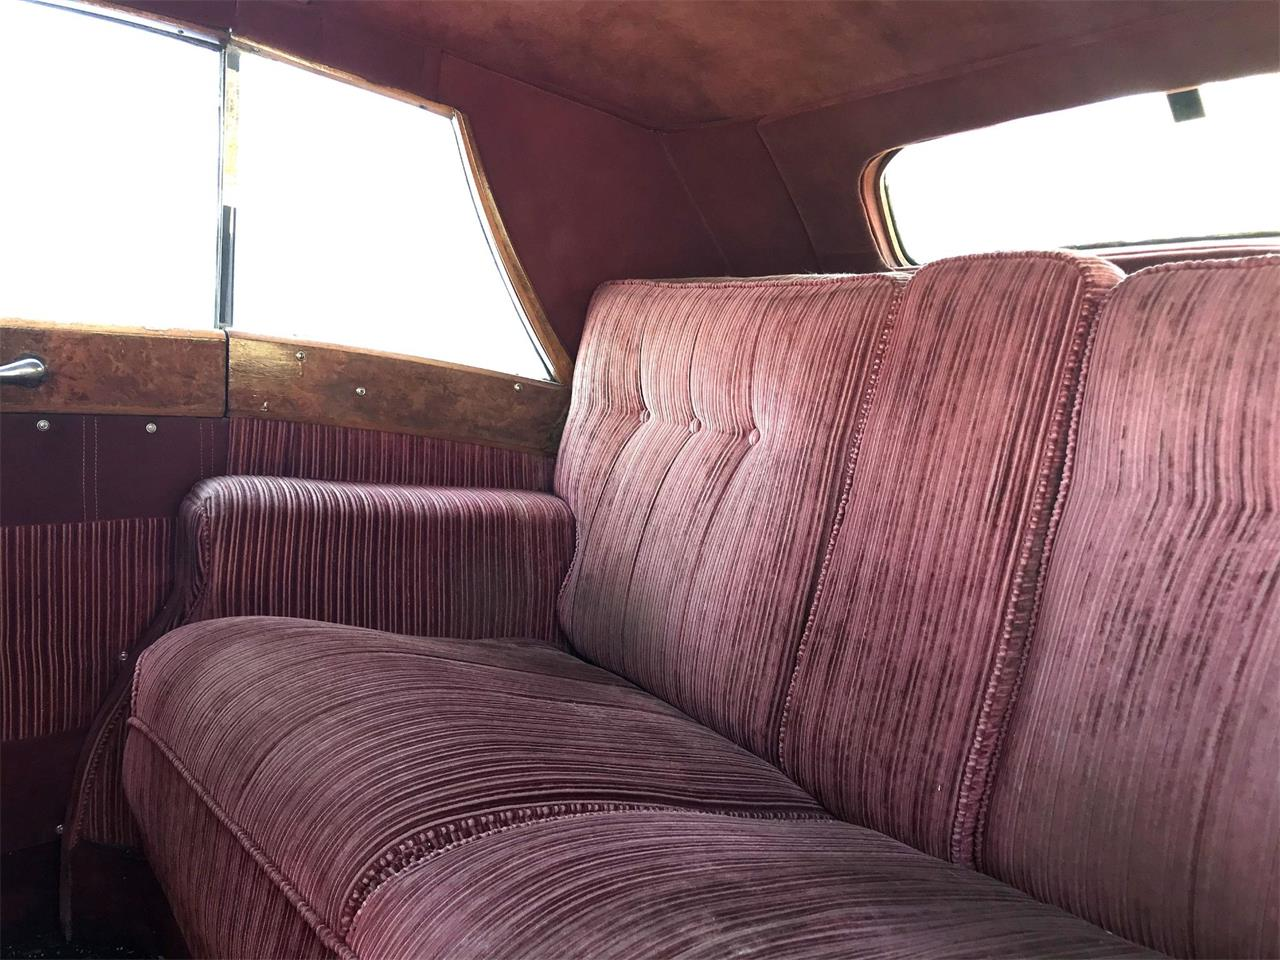 1948 Rolls-Royce Silver Wraith for sale in Stratford, NJ – photo 10